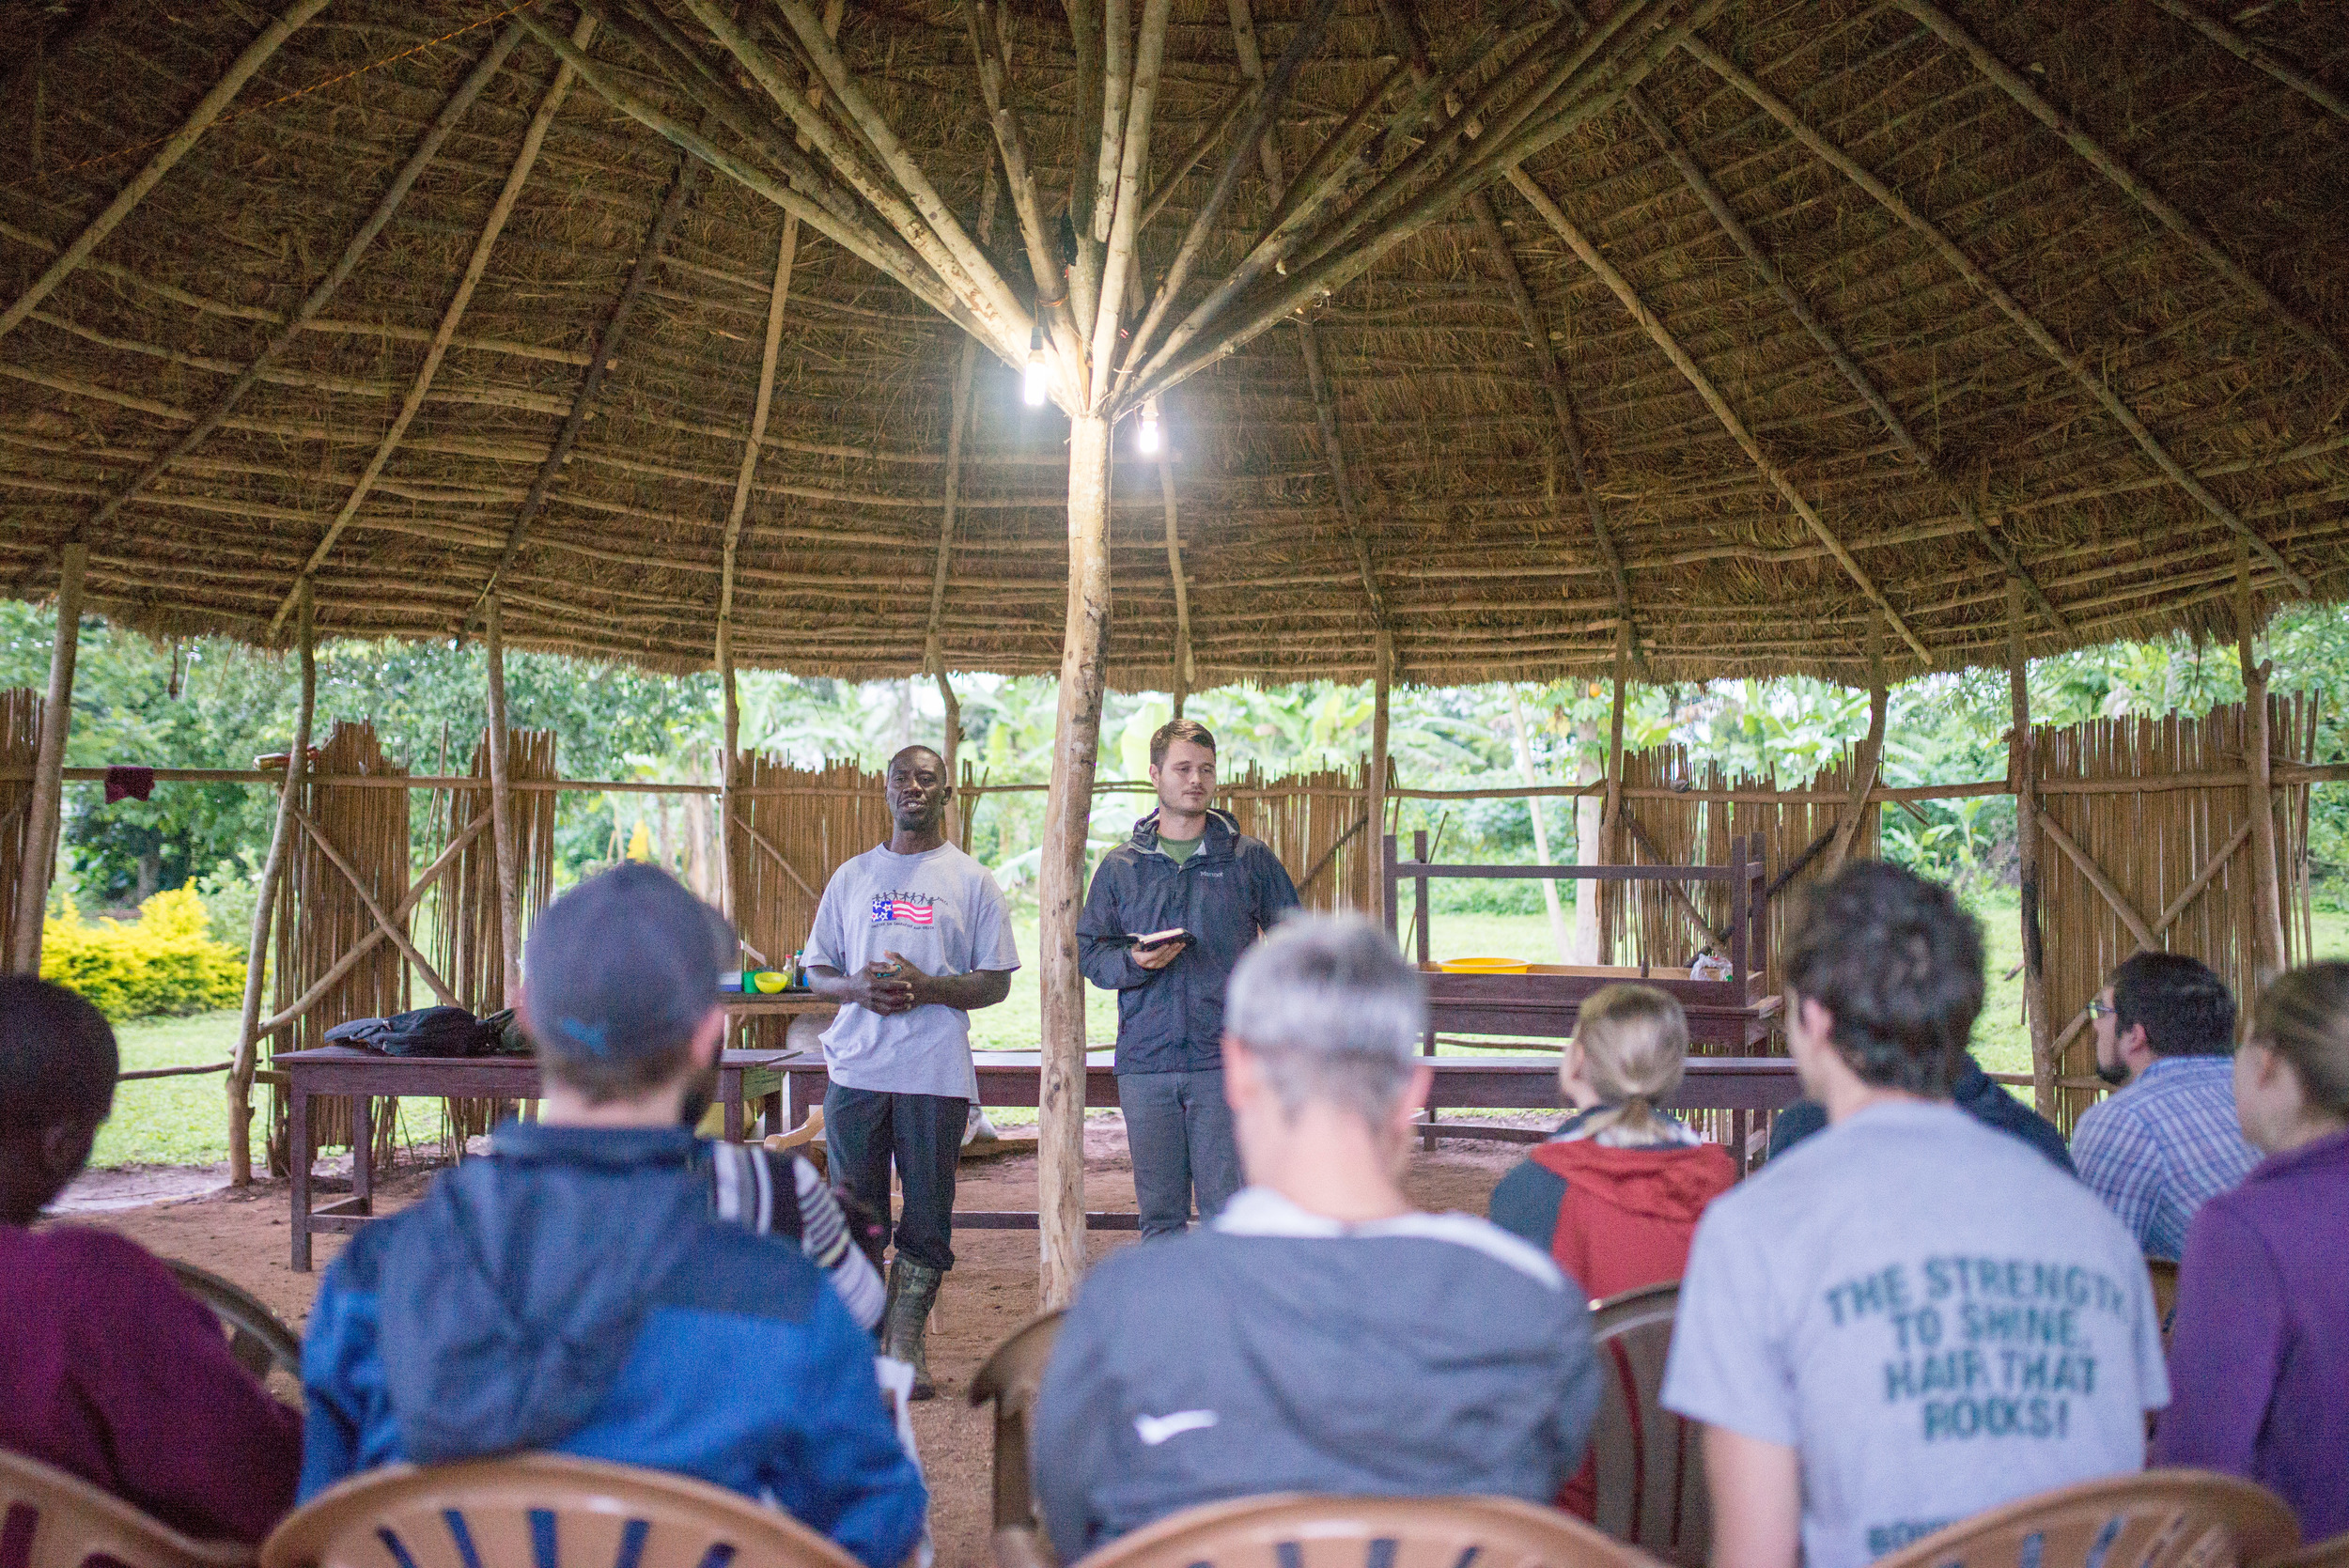 Cameron Kagay, Director of G.O.D. East Africa, shares a parting word with our community in Uganda in our favorite meeting place: the gazebo.